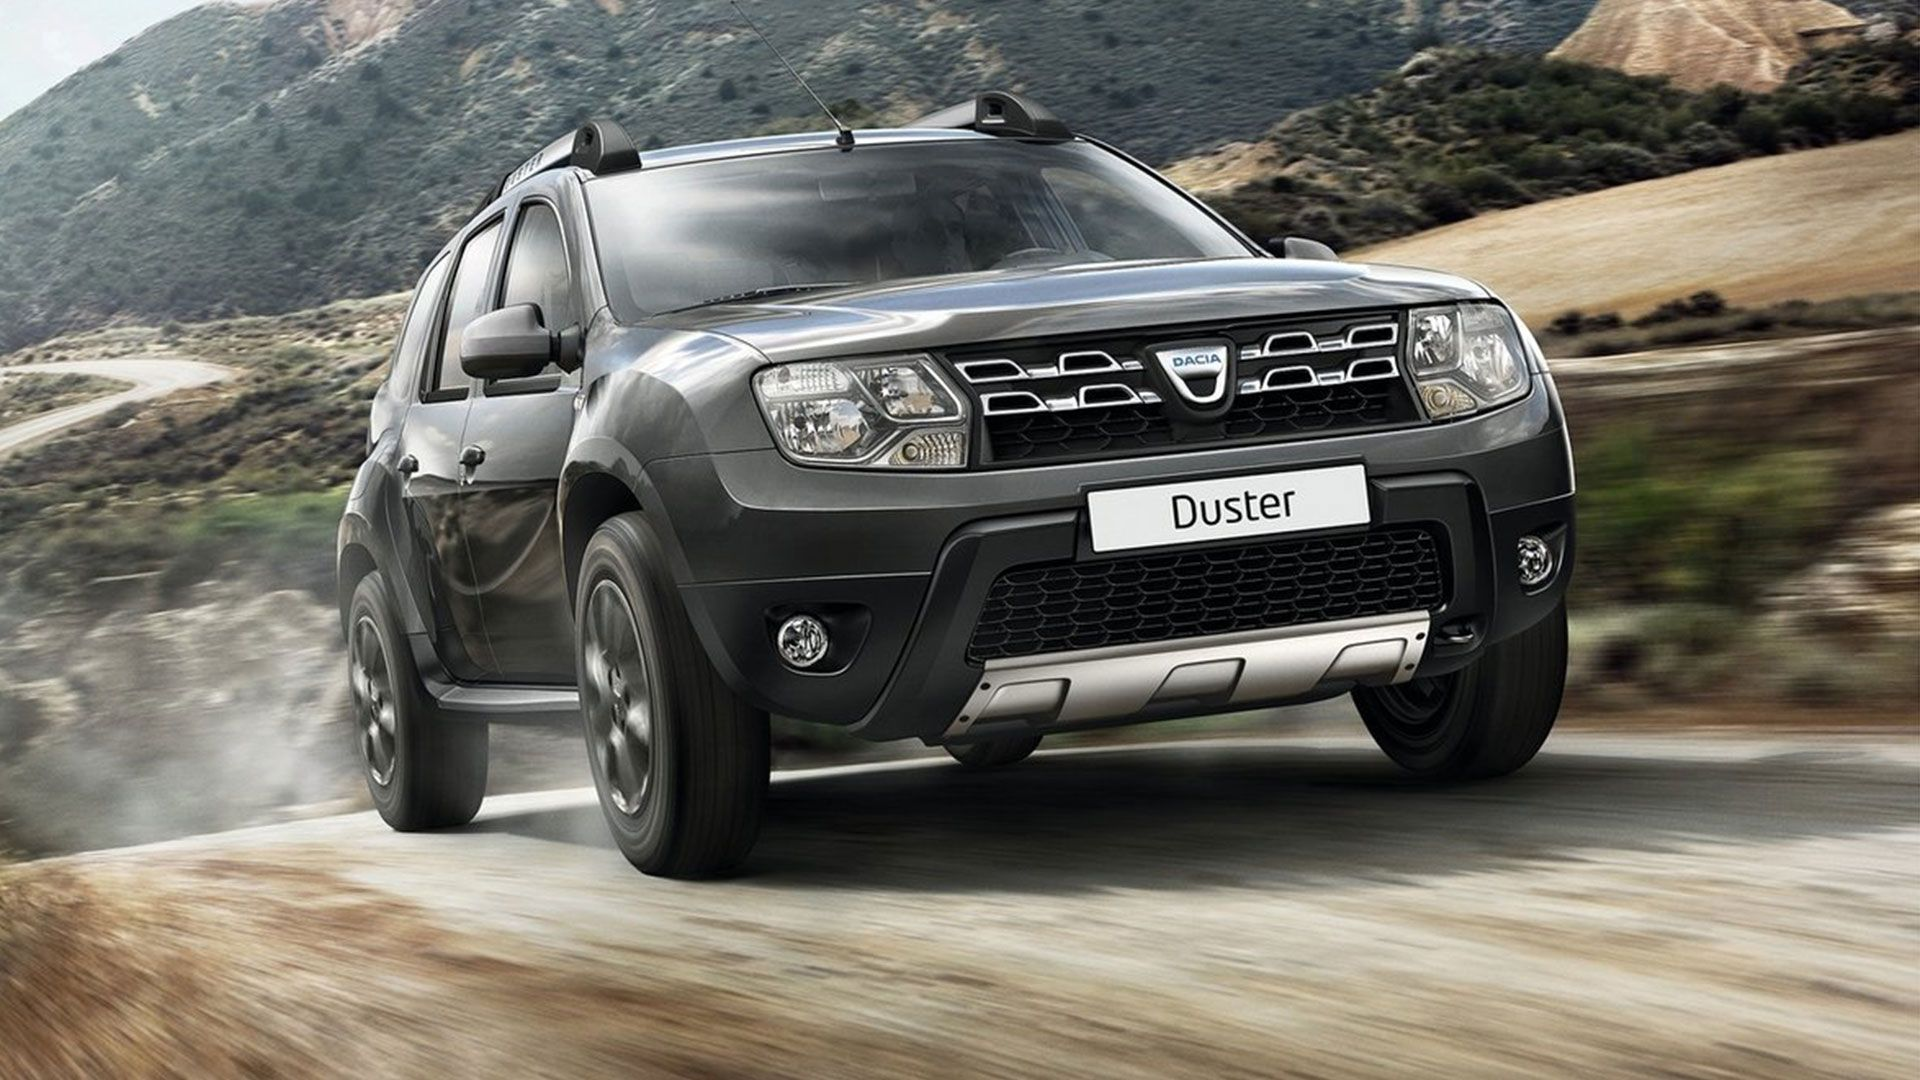 Download The Latest 2014 Renault Duster Hd Wallpaper Pictures From